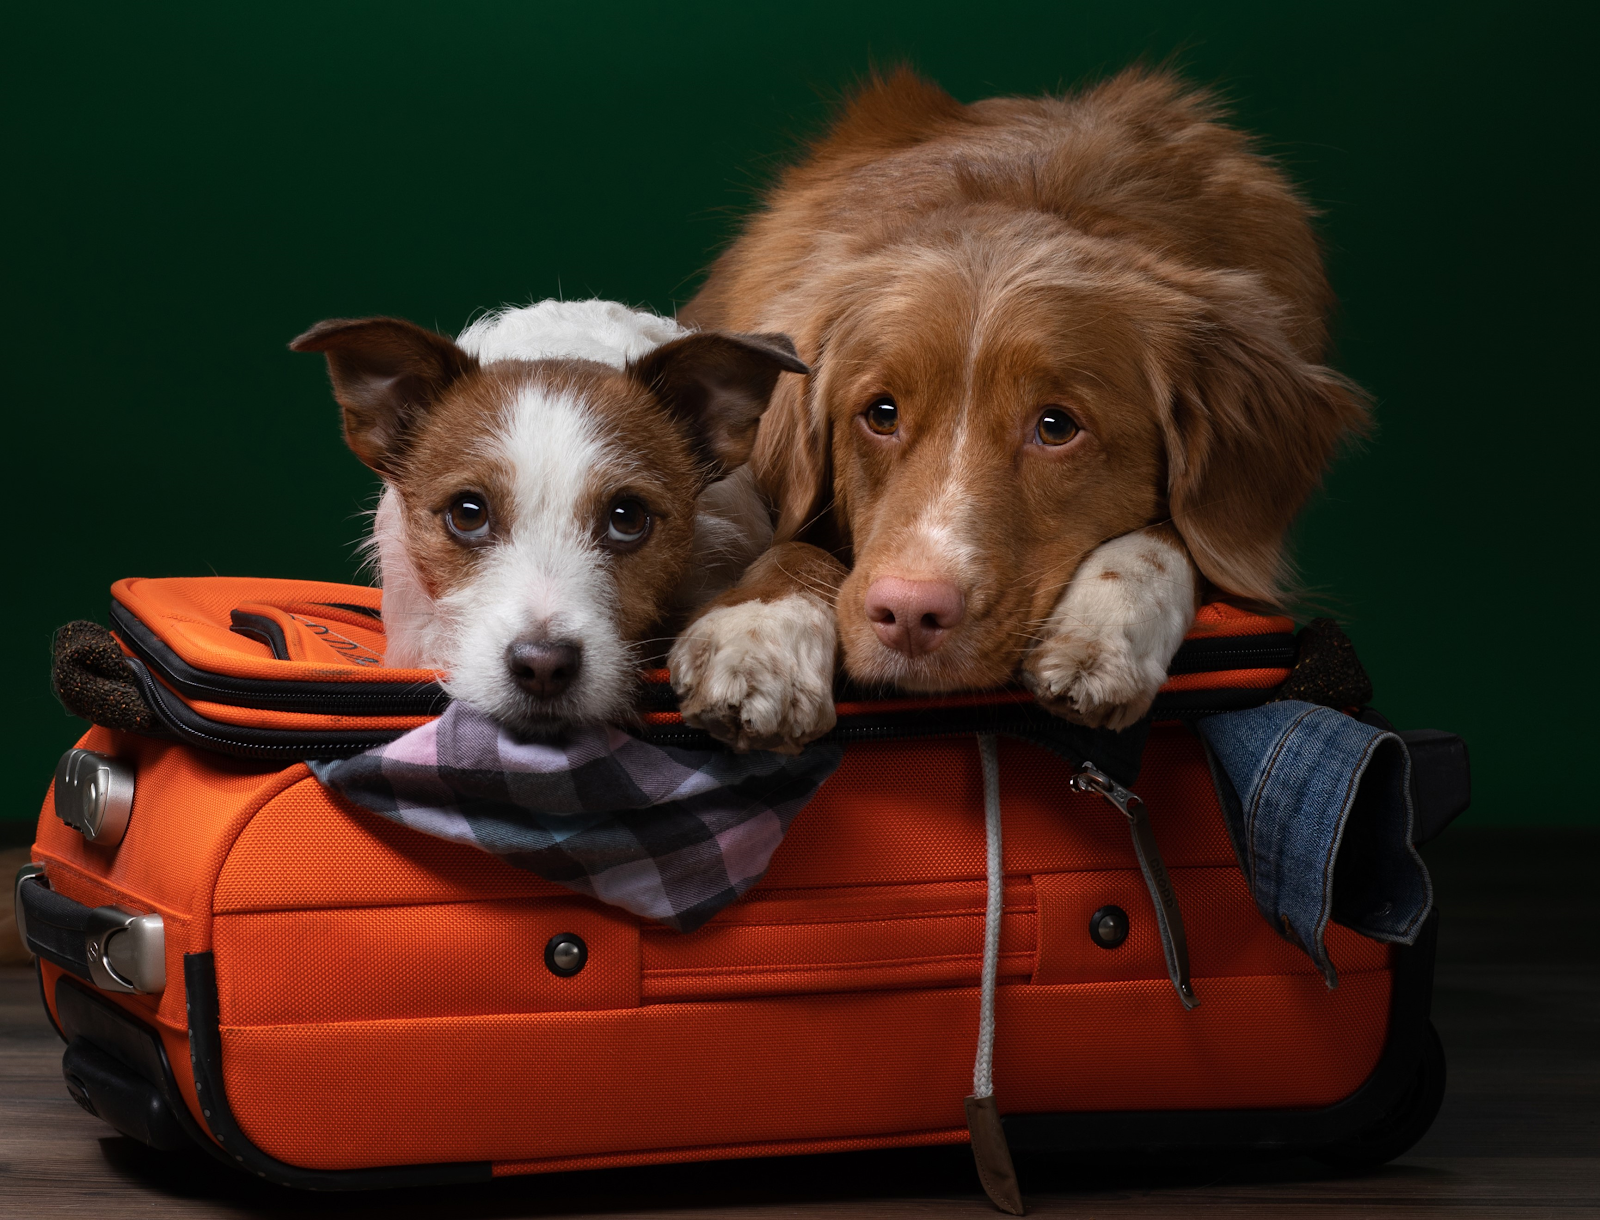 Two dogs give a sad look towards the camera as they lay on top of a partially-packed suitcase.